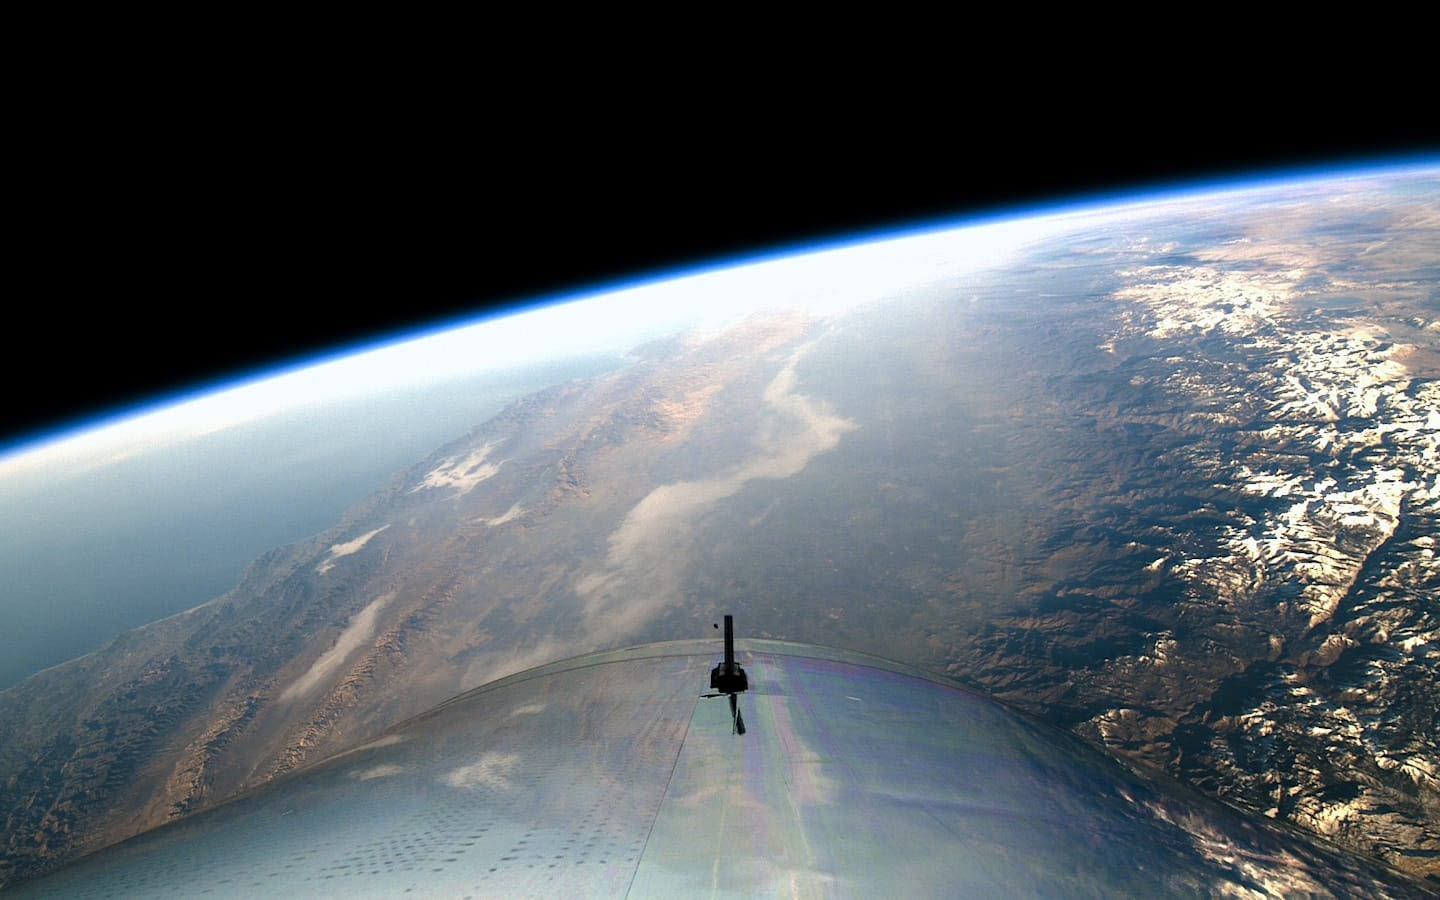 The view from a Virgin Galactic spaceship looking down on earth